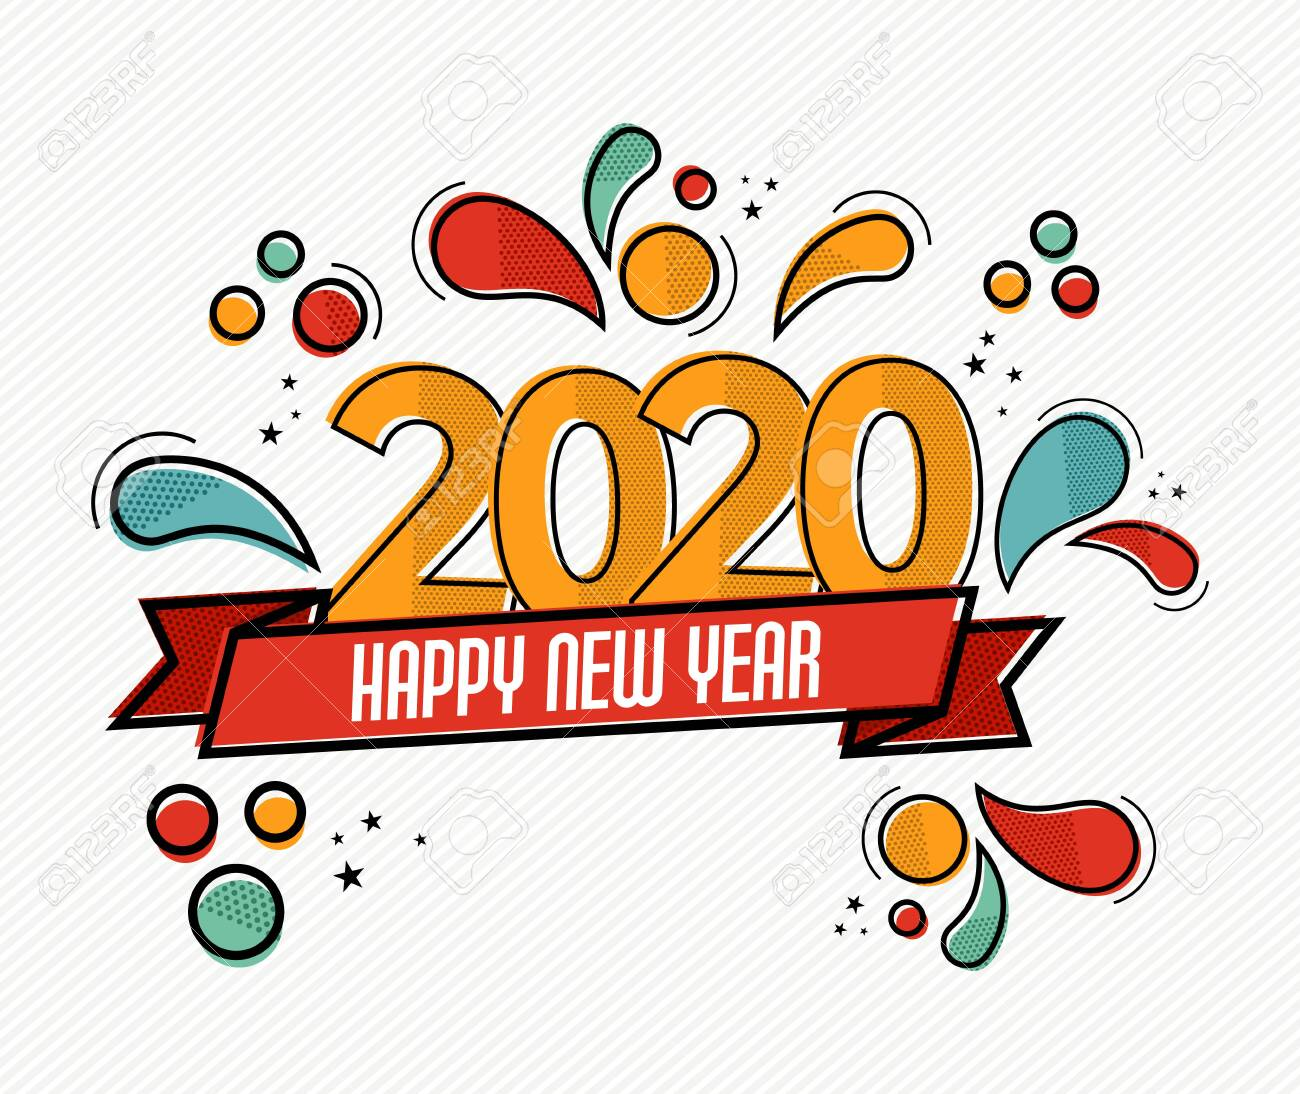 Happy New Year 2020 pop art greeting card illustration of colorful calendar date number with funny comic style decoration. - 134486356